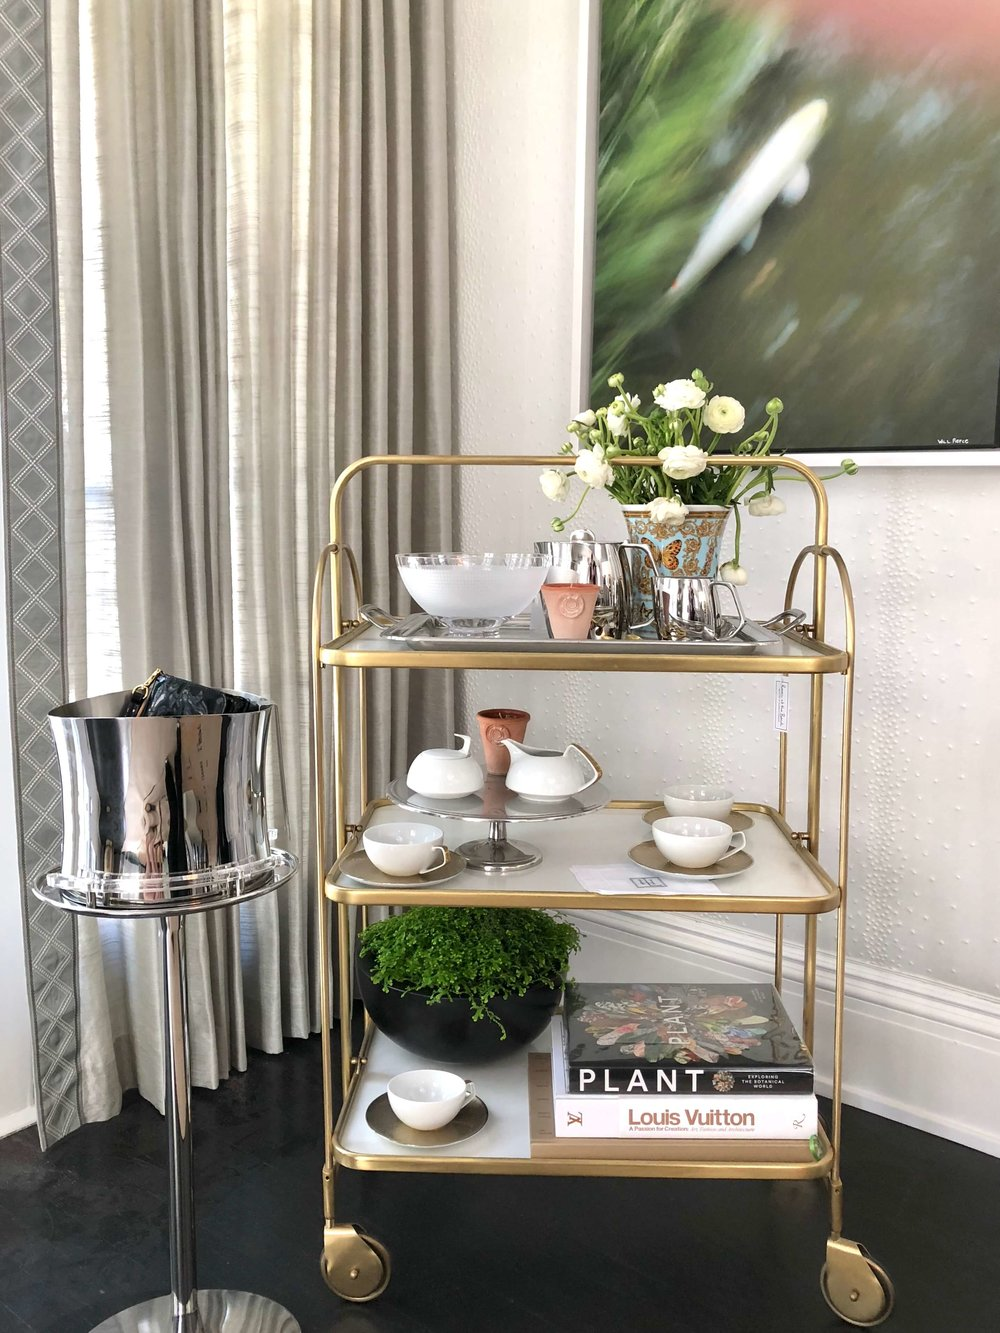 Dining room with bar cart was designed by Elizabeth Lamont, from Room by the Beach, at the Pasadena Showcase House of Design 2018 #diningroom #diningroomideas #barcart